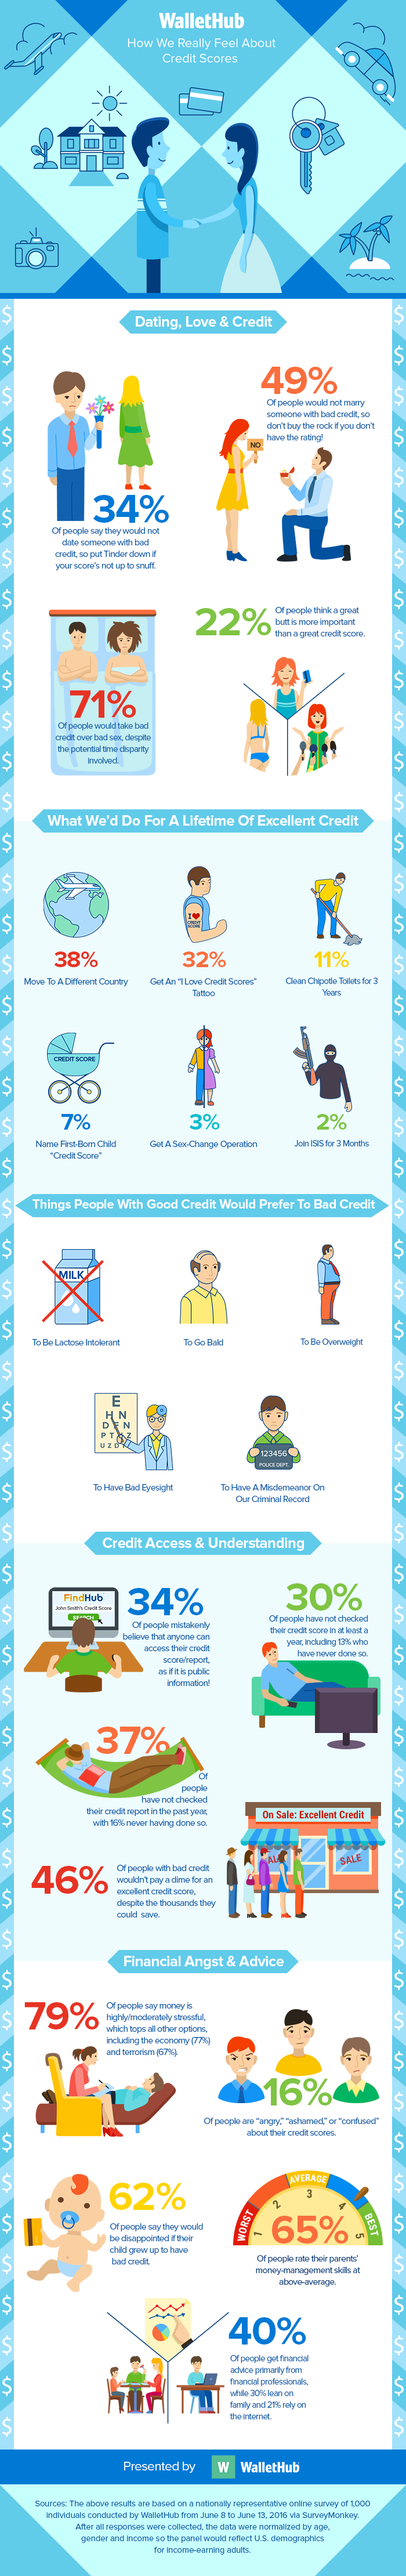 Credit Score 2016 Survey: How We Really Feel - WalletHub